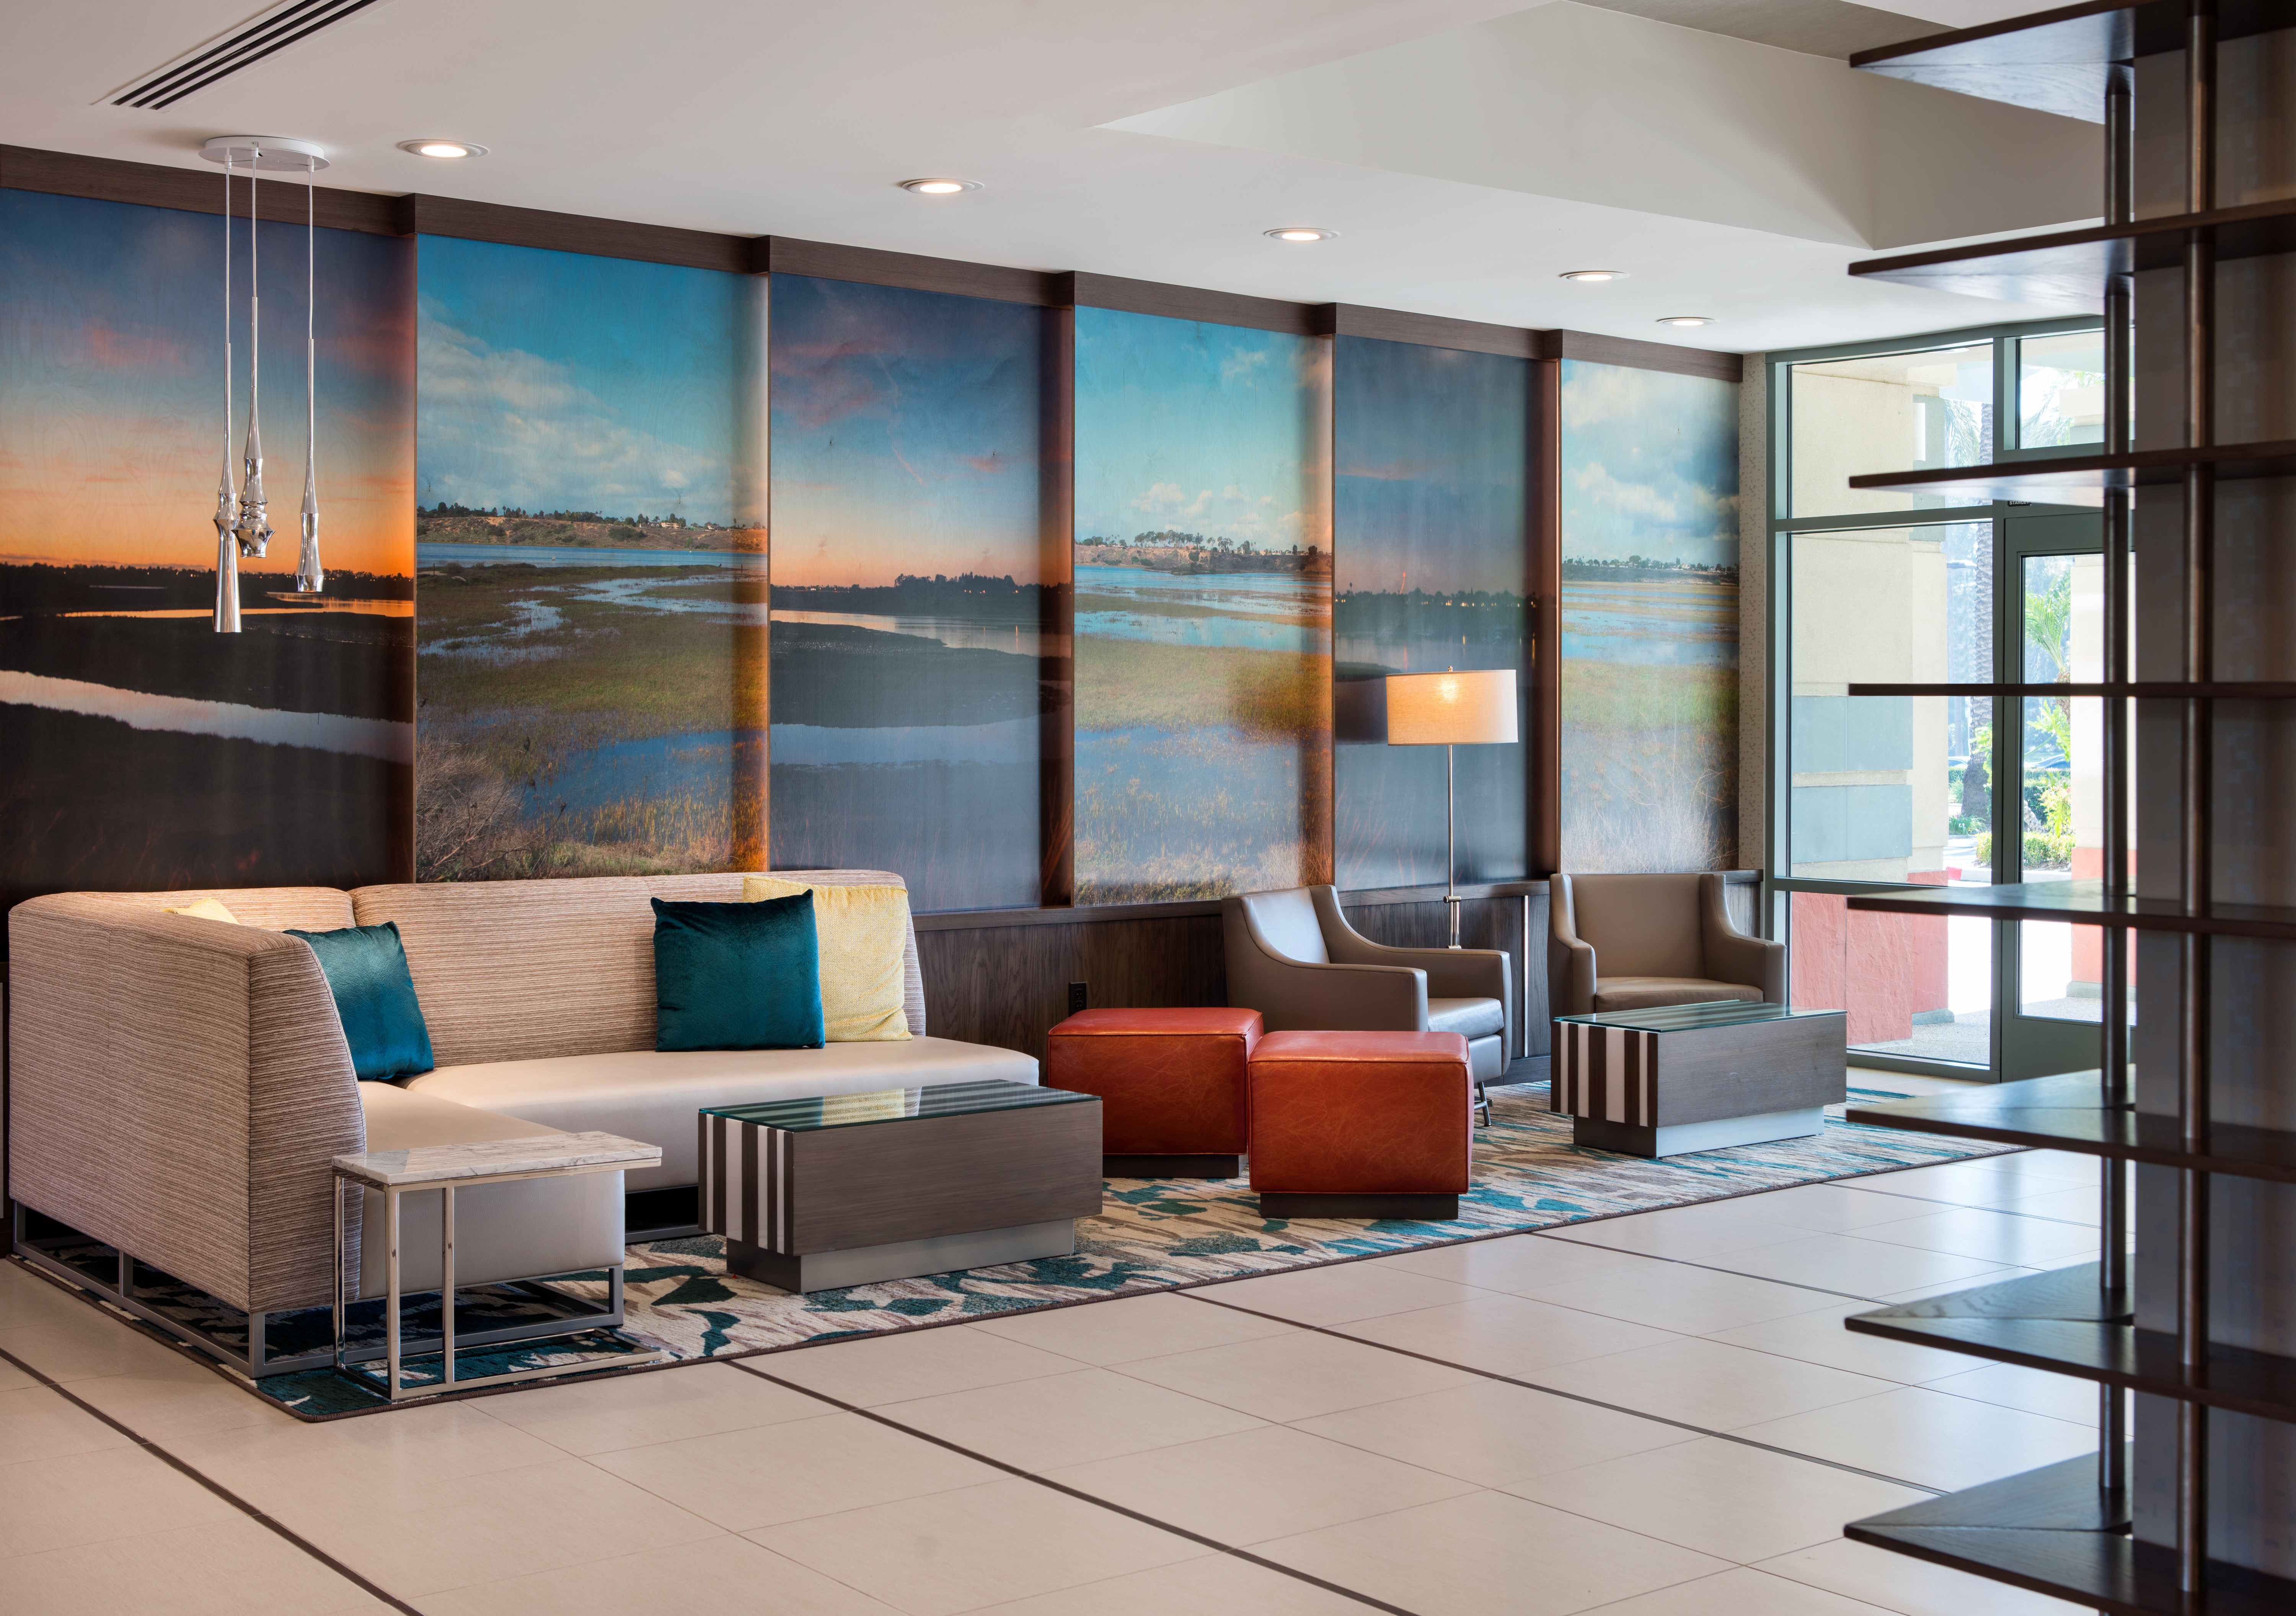 Lobby - Along with our spacious dining area and meeting spaces, our lobby now sports a fresh, modern design to help you maintain your pace and thrive during extended stays in Southern California.